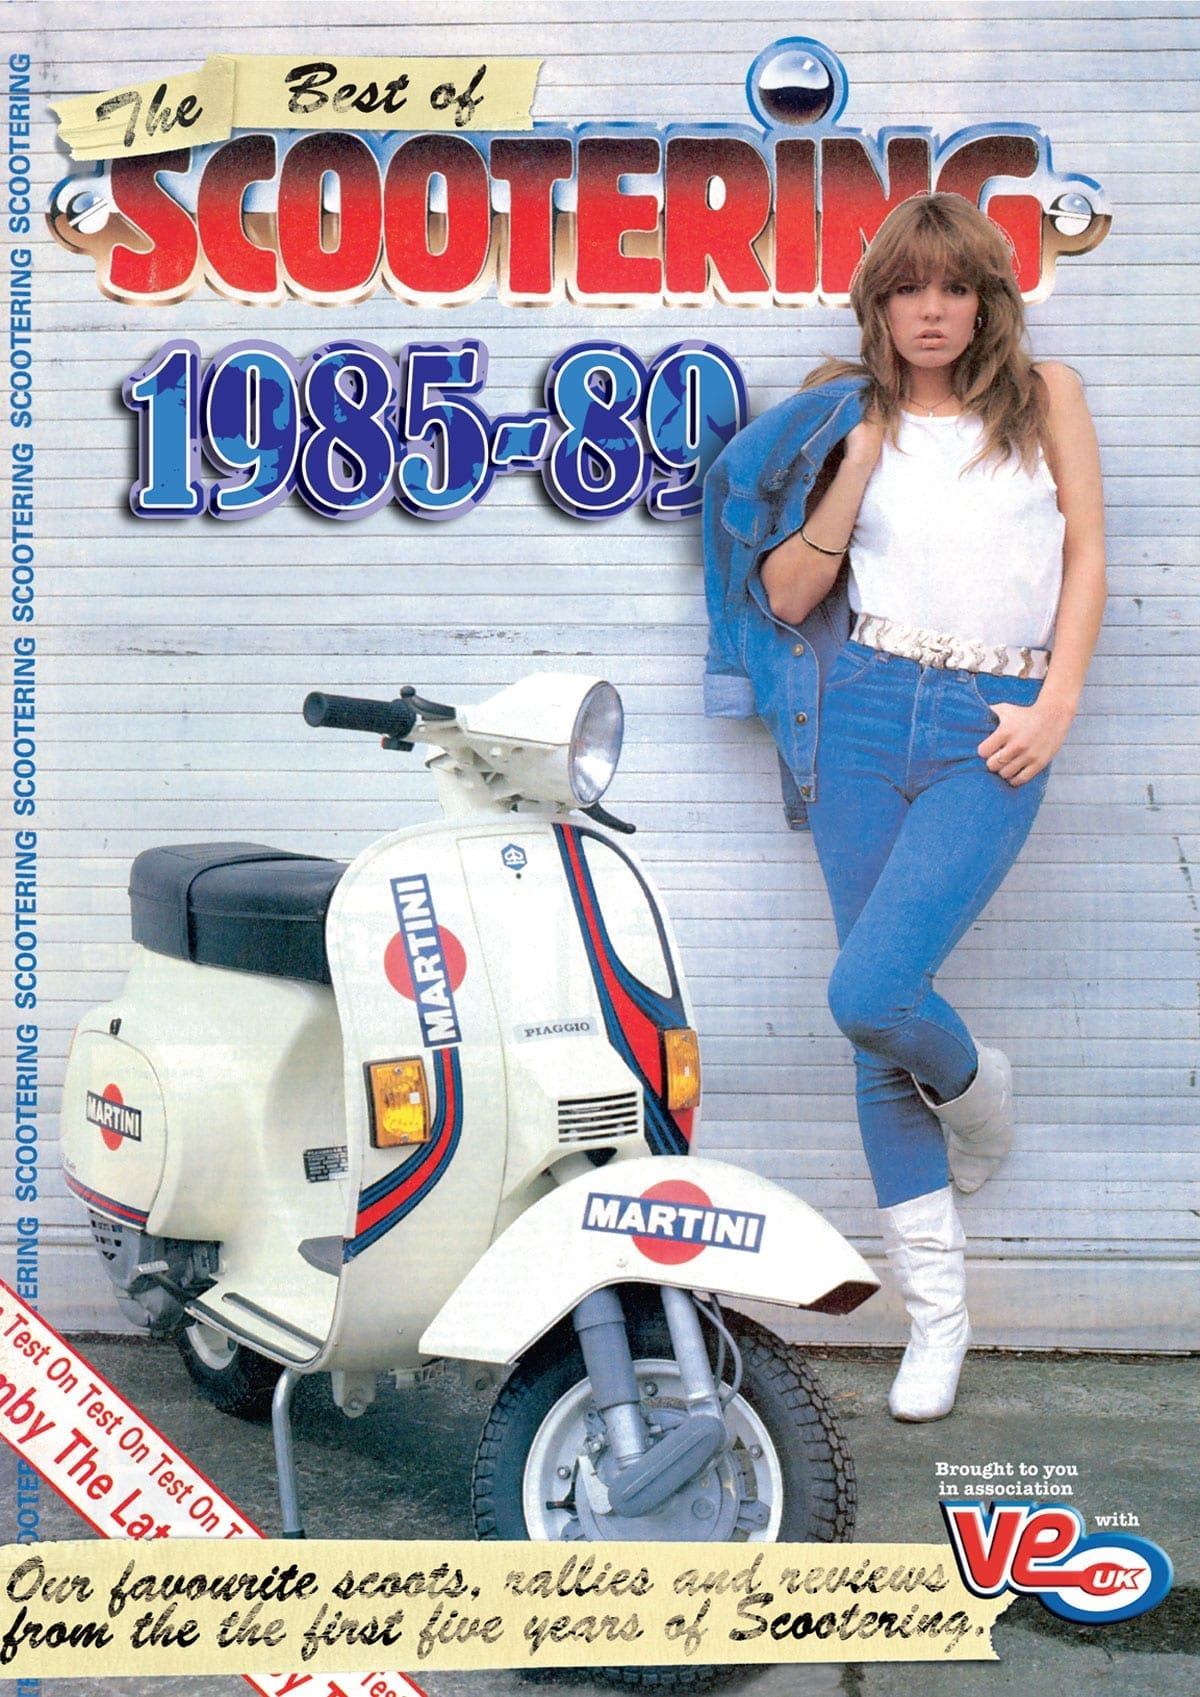 The Best of Scootering - 1985-89